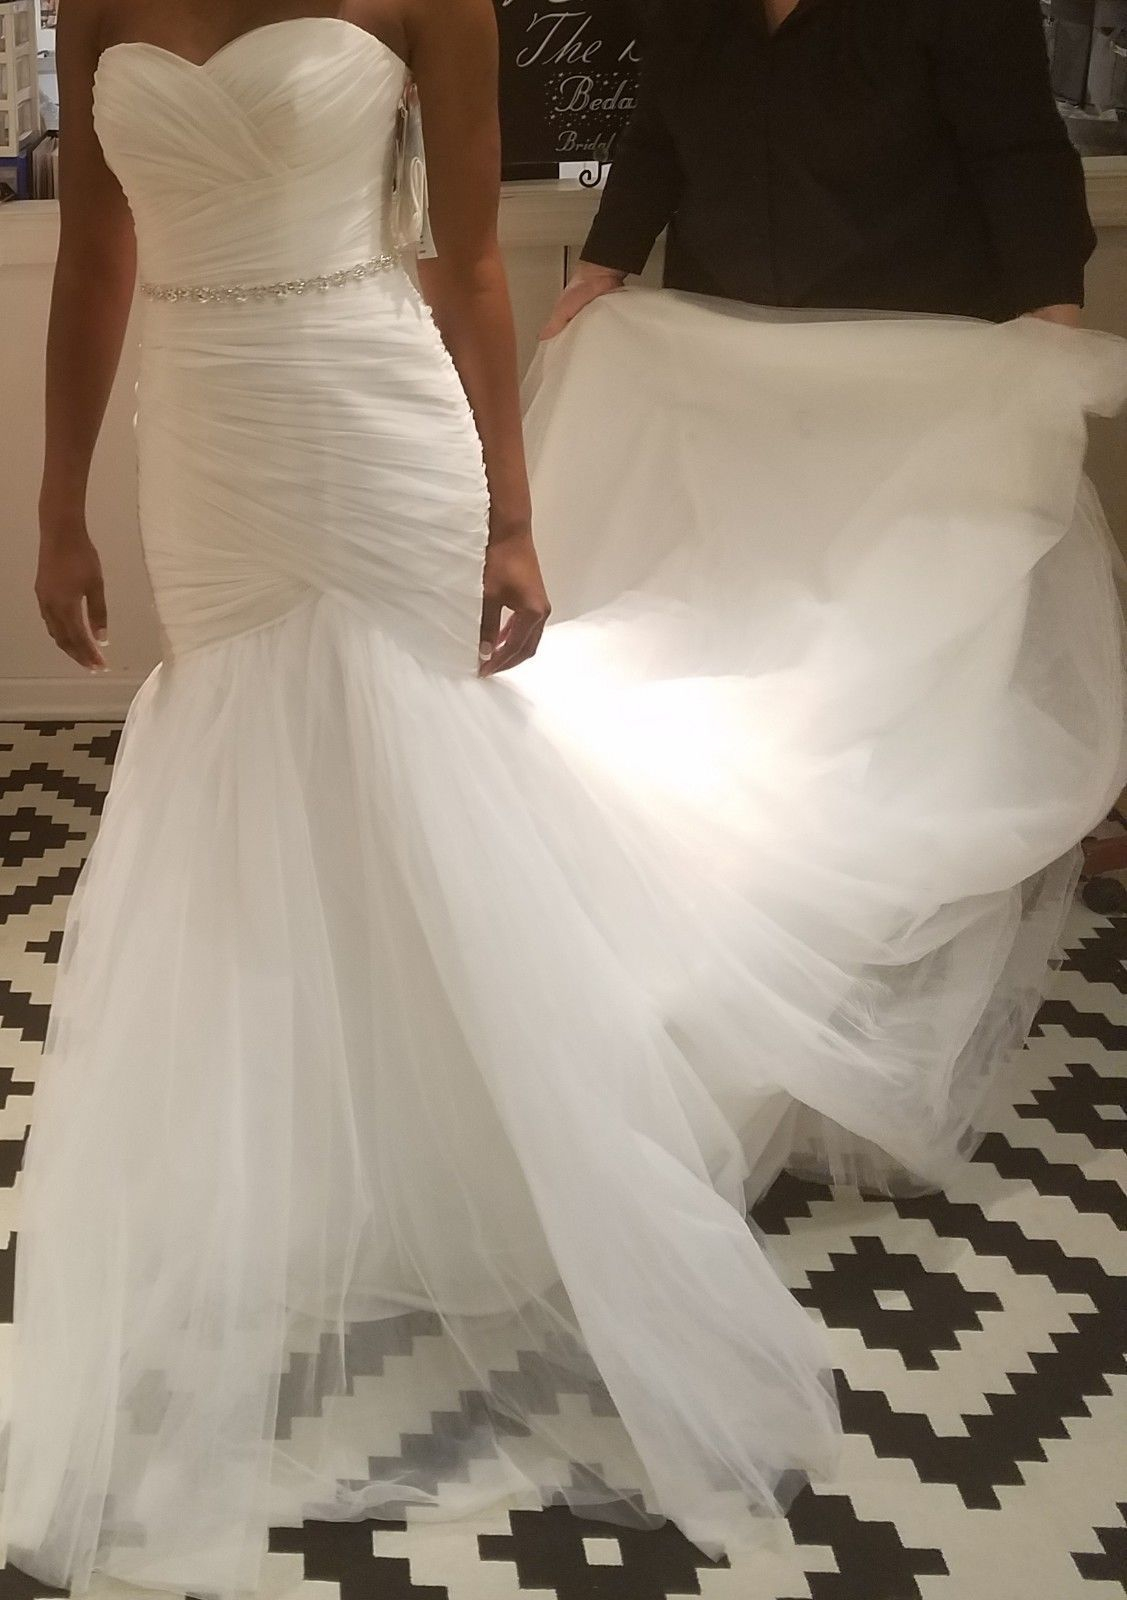 Mori Lee Ivory Wedding Dress Size 8 Style 5108 New Unadulter With Tags Wedding Dress Accessories Wedding Dresses Mermaid Sweetheart Bridal Gowns Mermaid